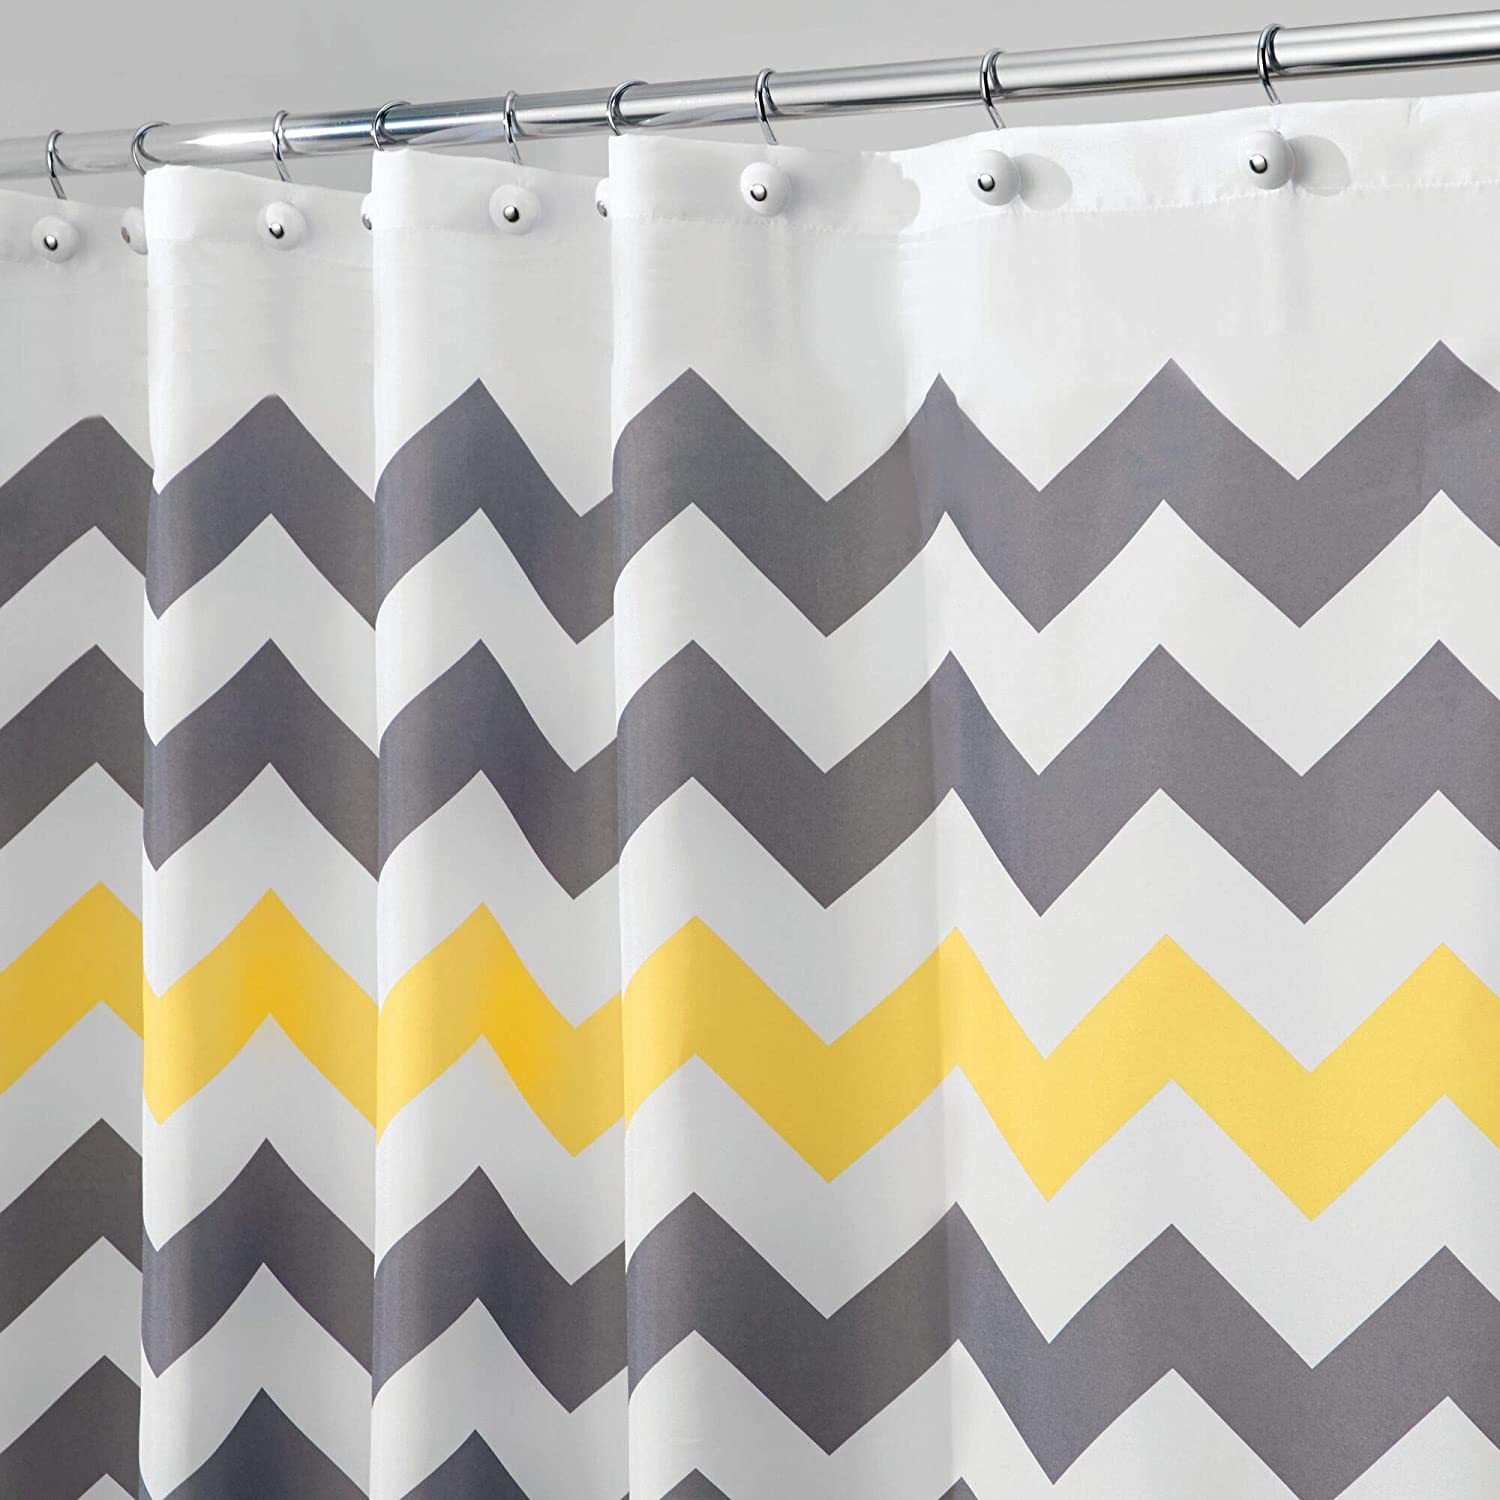 Wrinkle iDesign Chevron Quick-Dry Water-Repellant Fabric Shower Curtain 54 x 72- Gray and Yellow PVC Free and Machine Washable Mold and Mildew Resistant Polyester